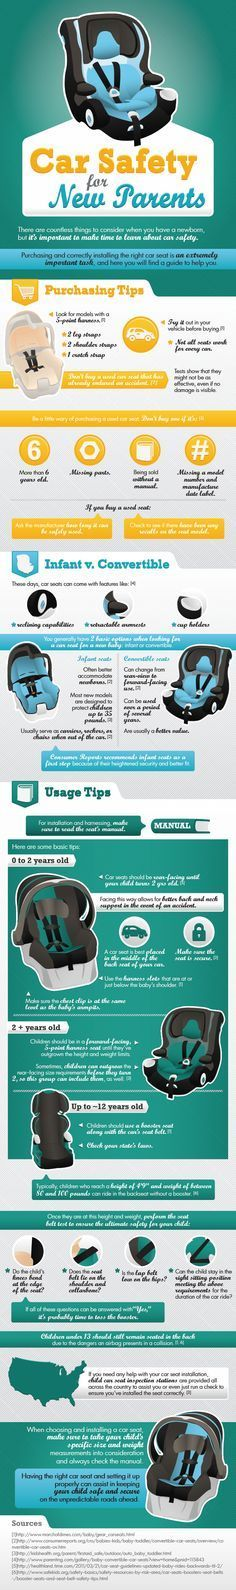 From car seat to stroller the Doona is versatile. #carseat #doona #stroller… #infantcarseatandstroller